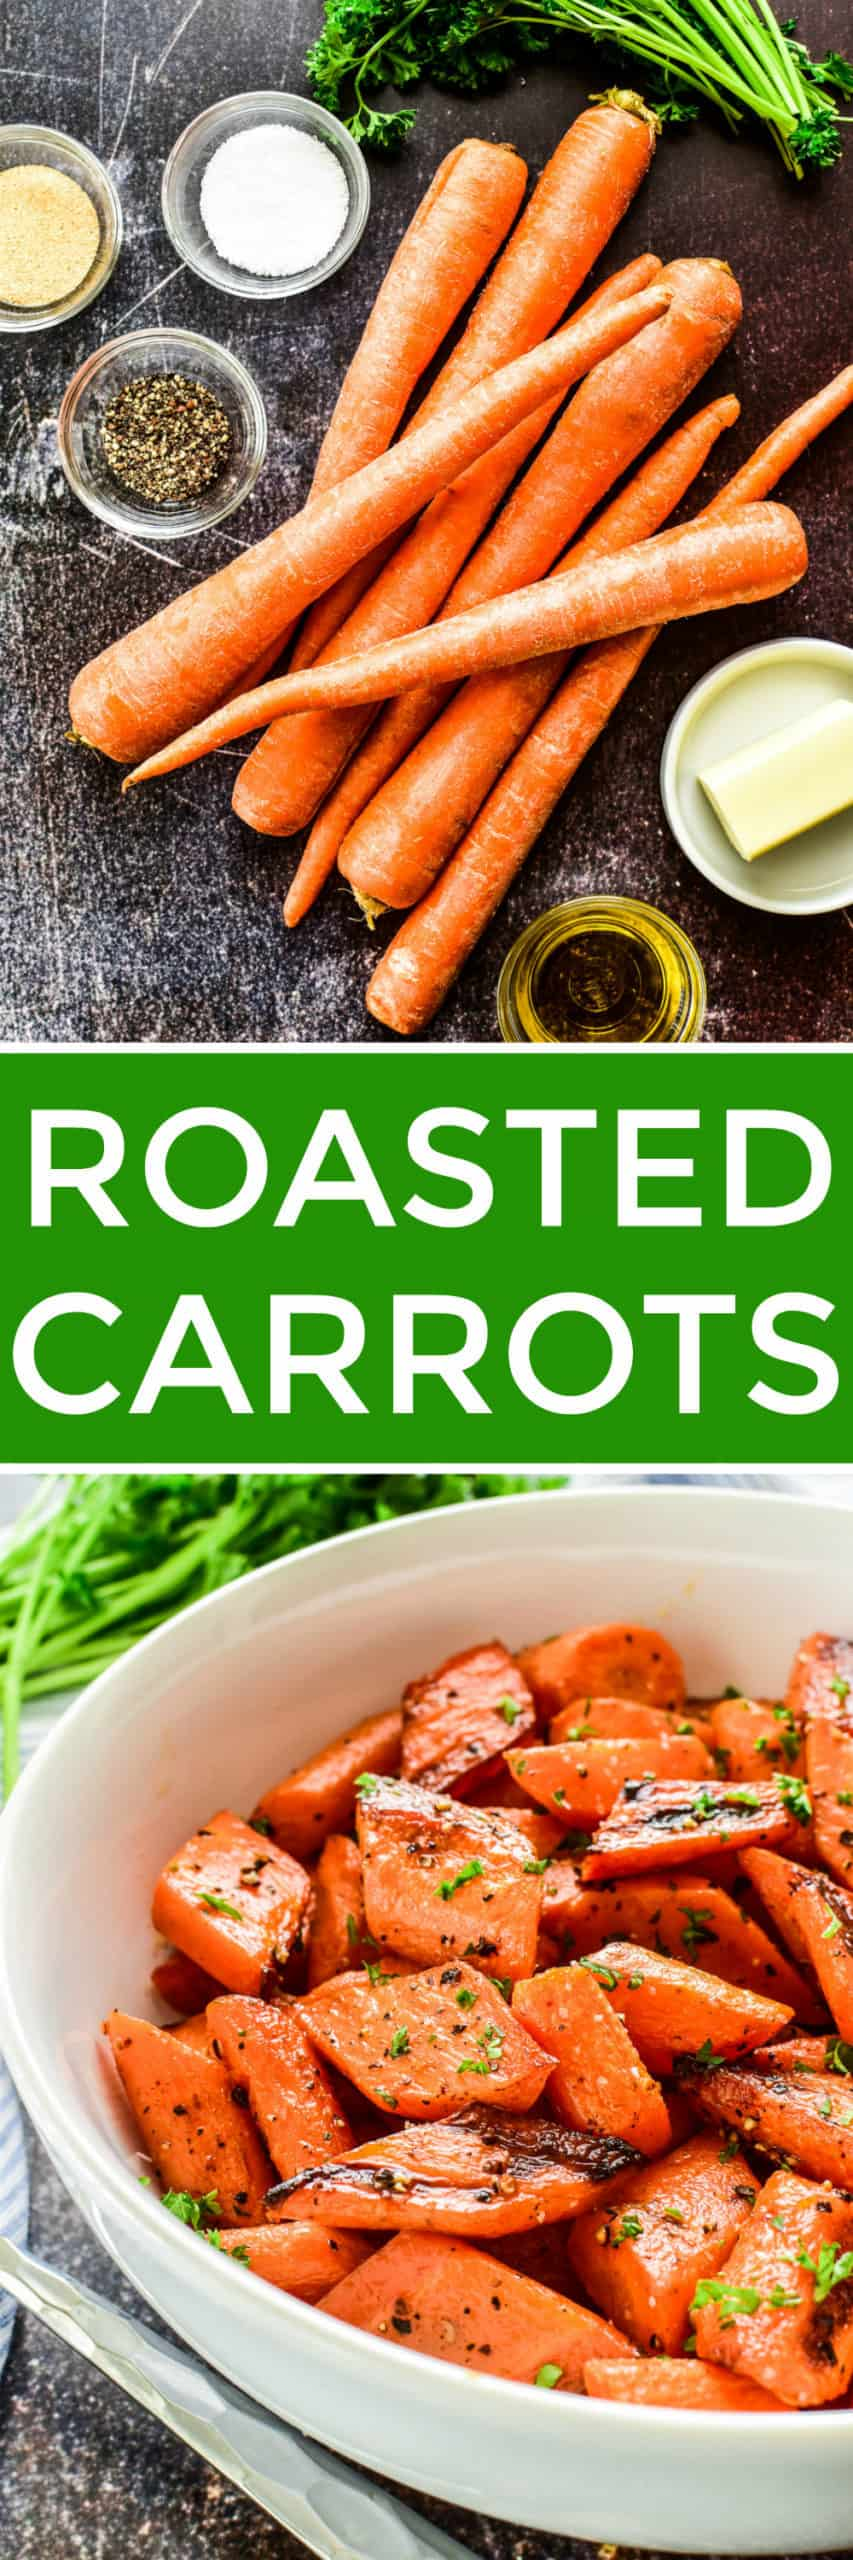 Collage image of Roasted Carrots ingredients and finished recipe